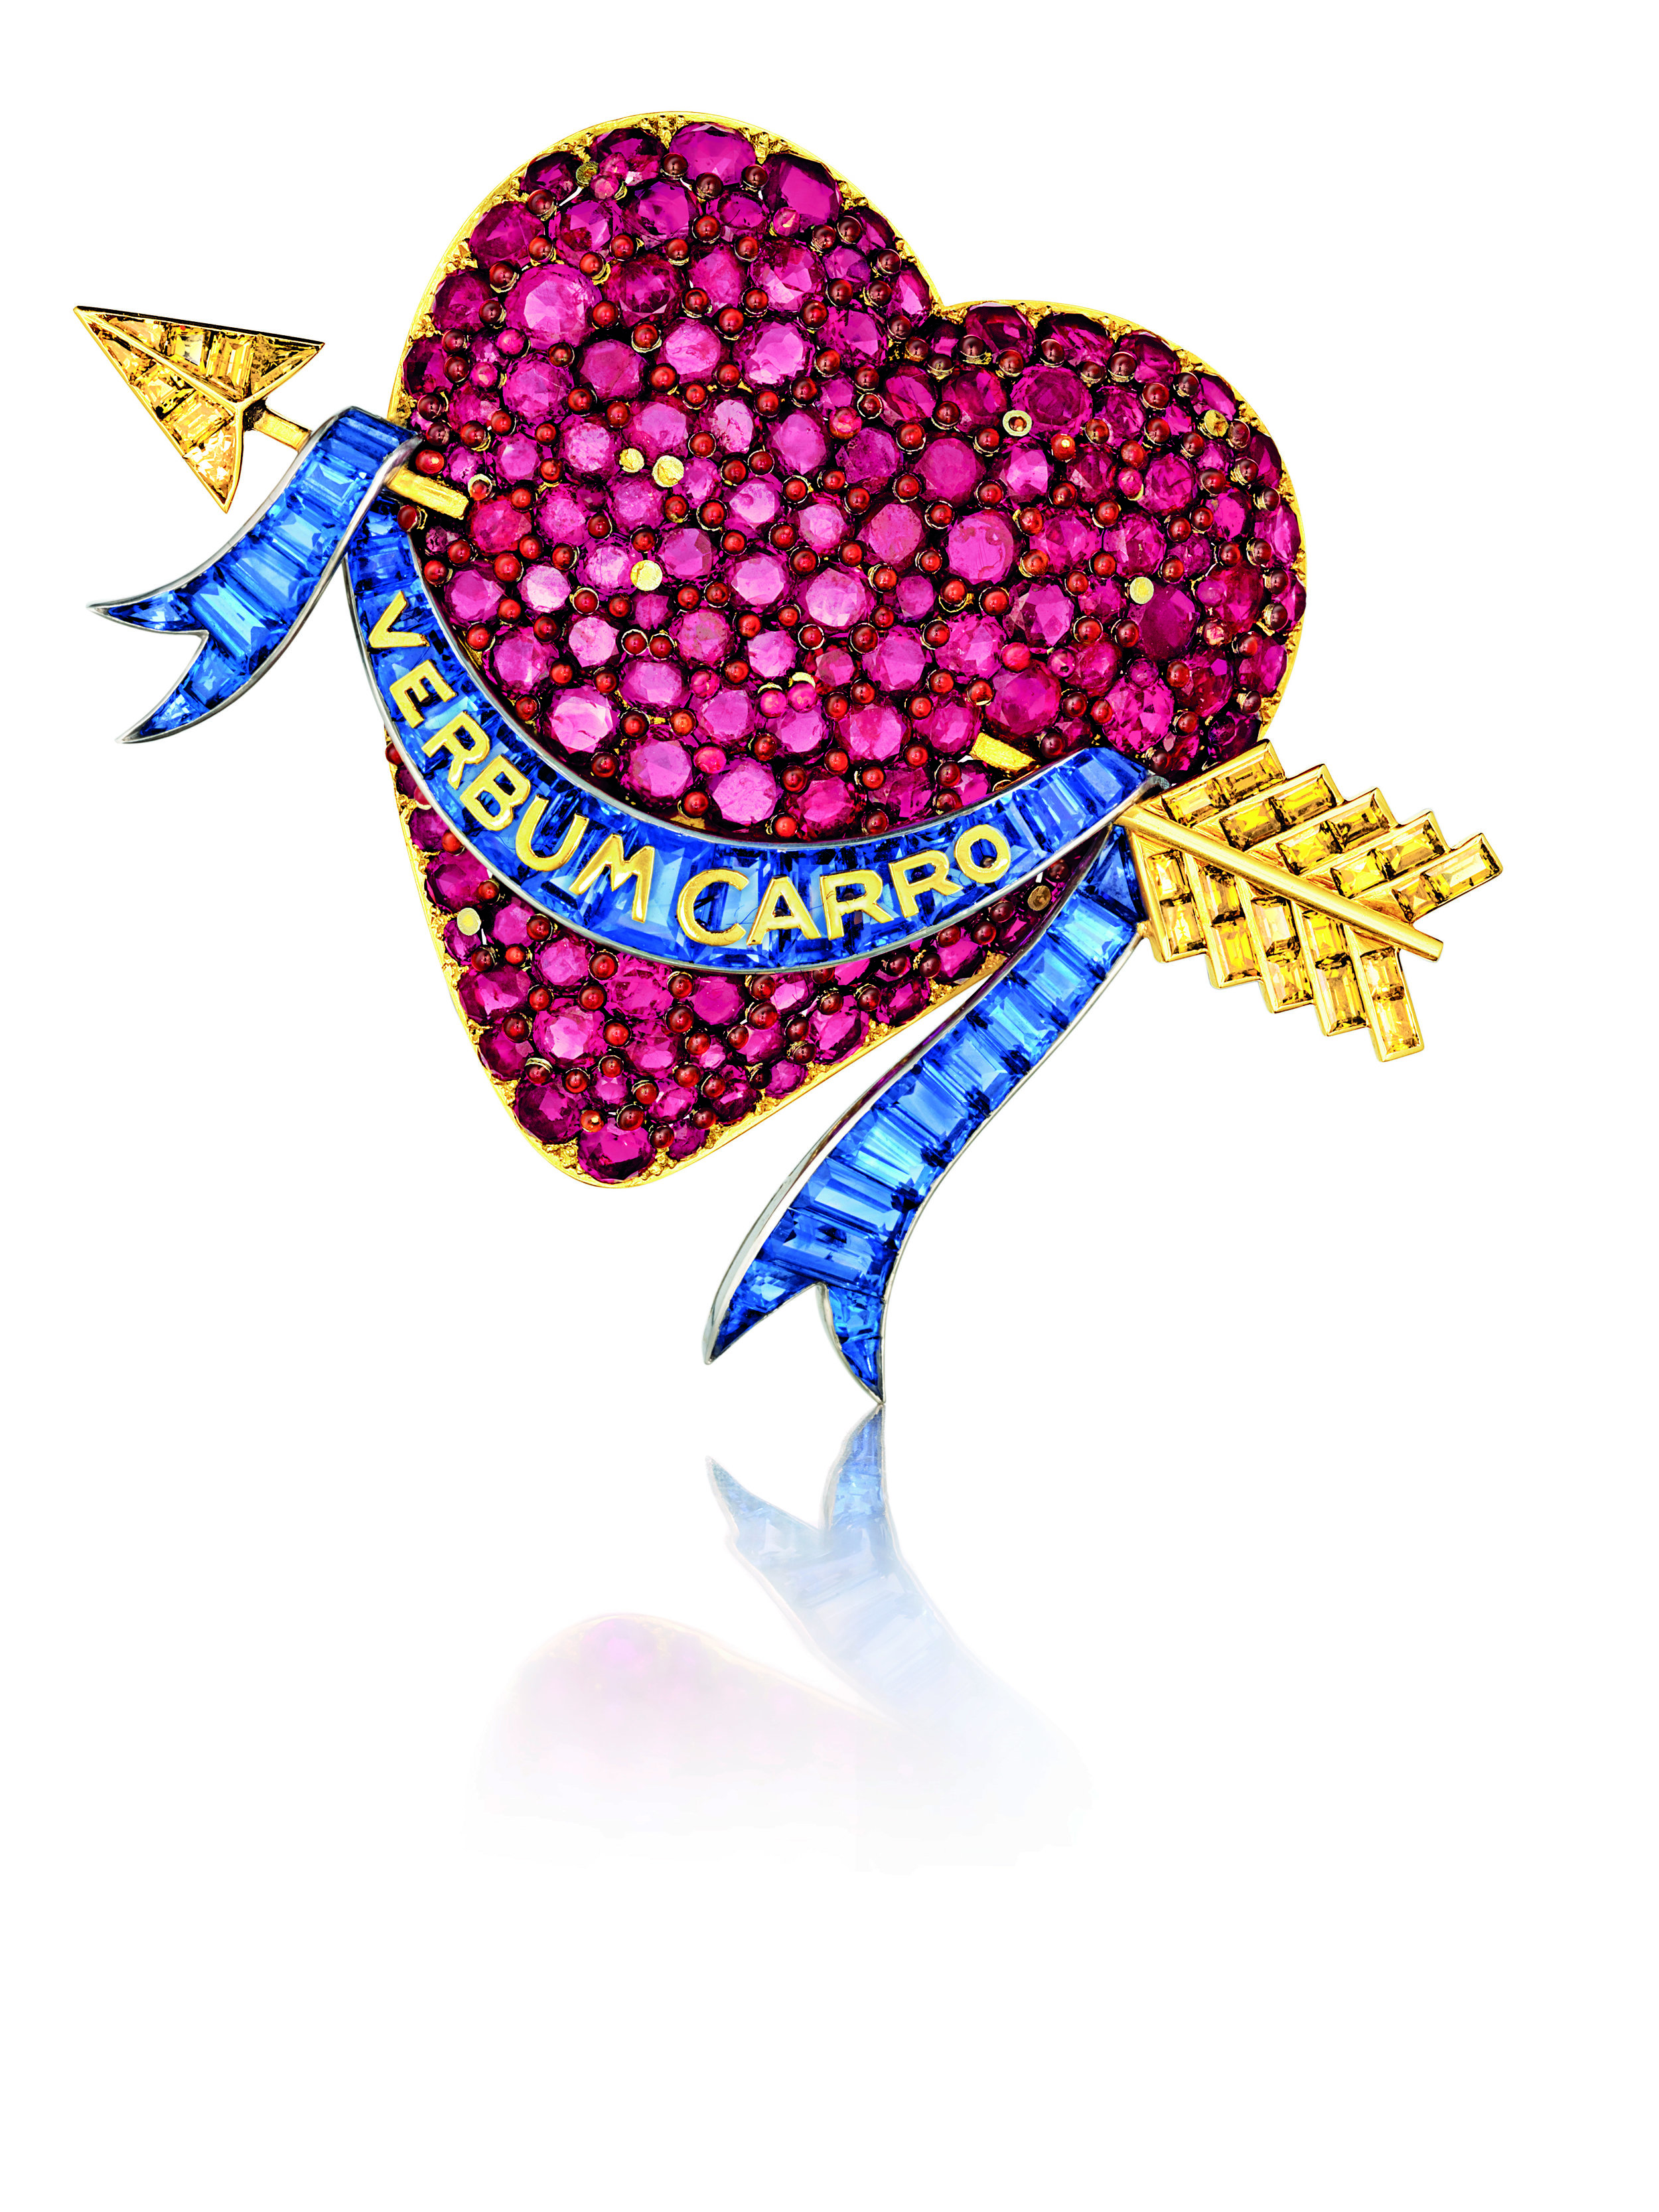 The Heart brooch by Verdura for Paul Flato c1938 inscribed VERBUM CARRO meaning THE WORD MADE FLESH or A WORD TO MY DEAR ONE_commissioned by Millicent Rogers_© Verdura_from RUBY_published 2017.jpg